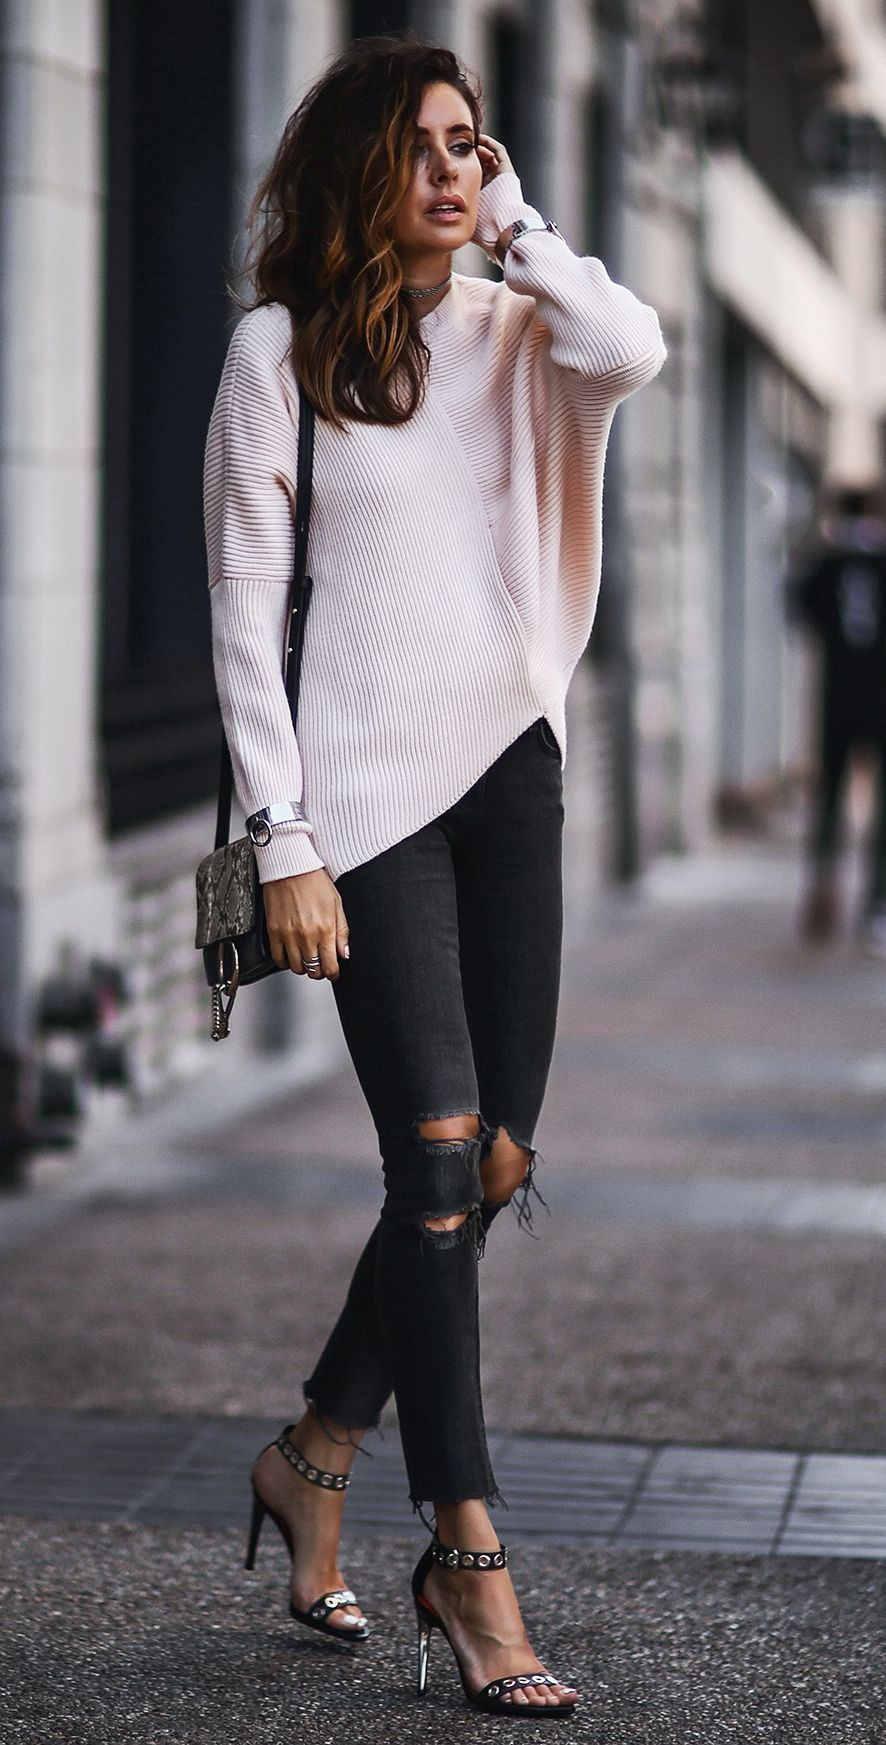 1ff58d22c7fb 40 Trendy Outfit Ideas to Look More Stylish in 2018 - Her Style Code